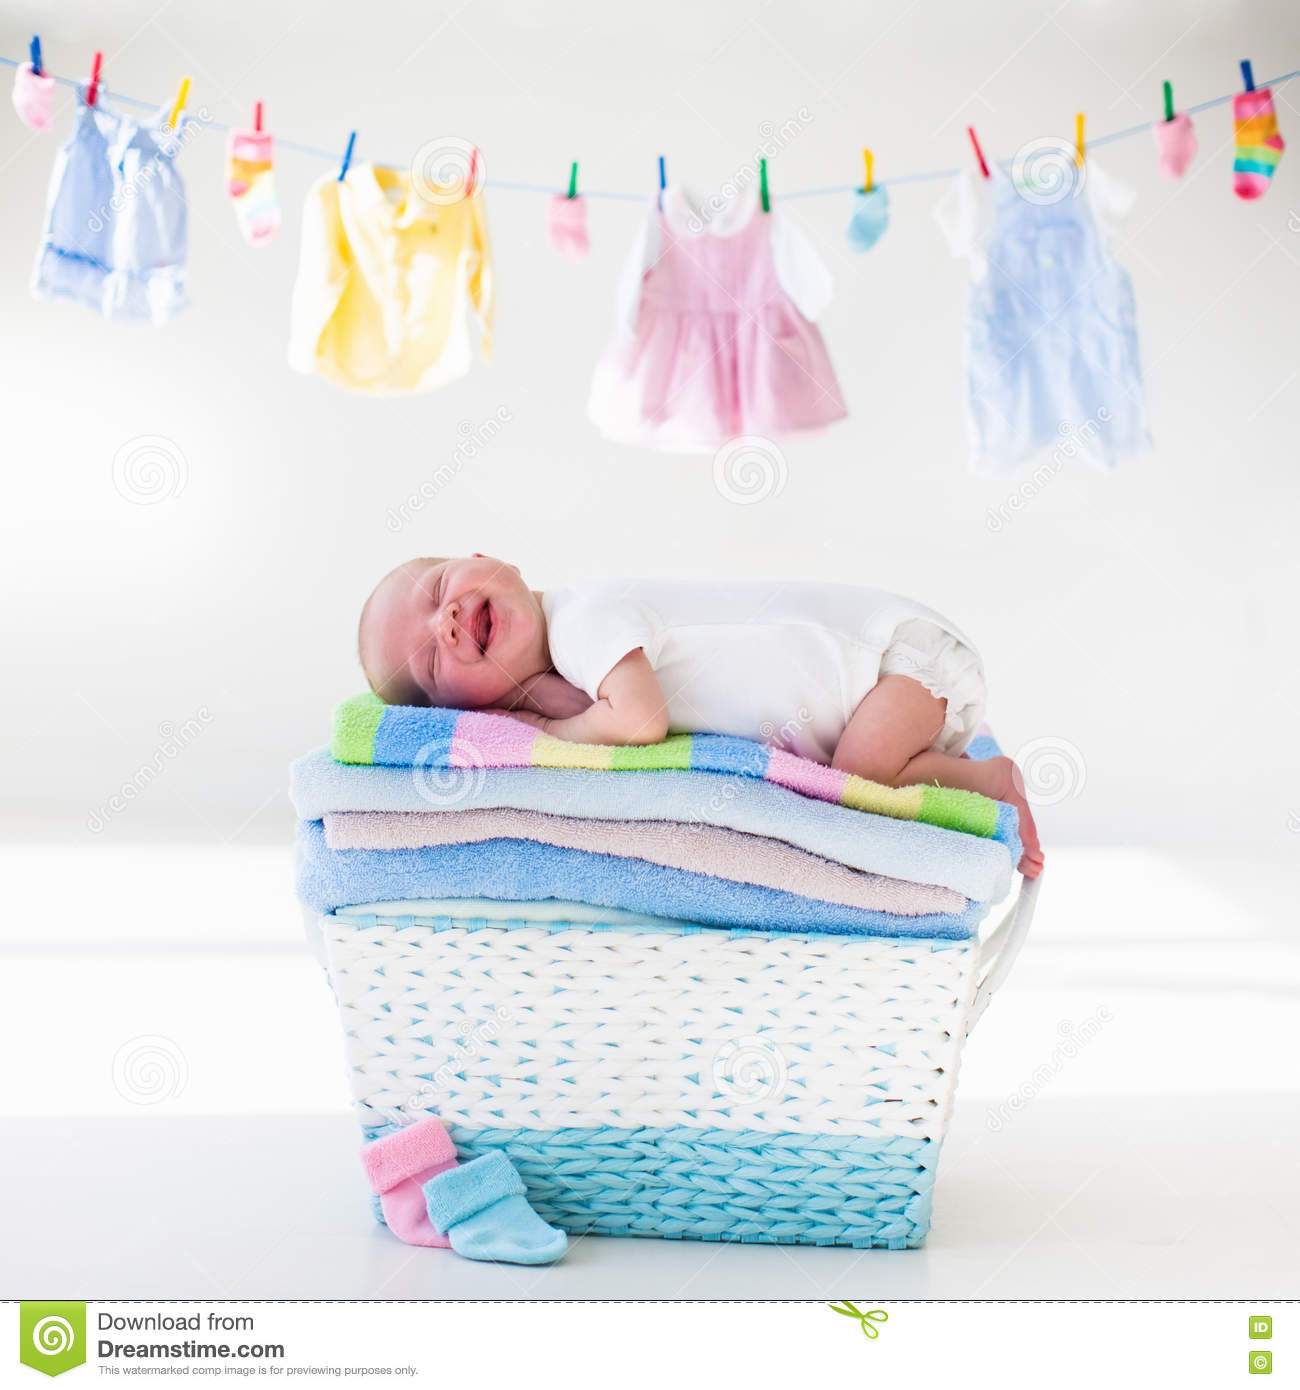 Newborn Baby In A Basket With Towels Stock Photo Image